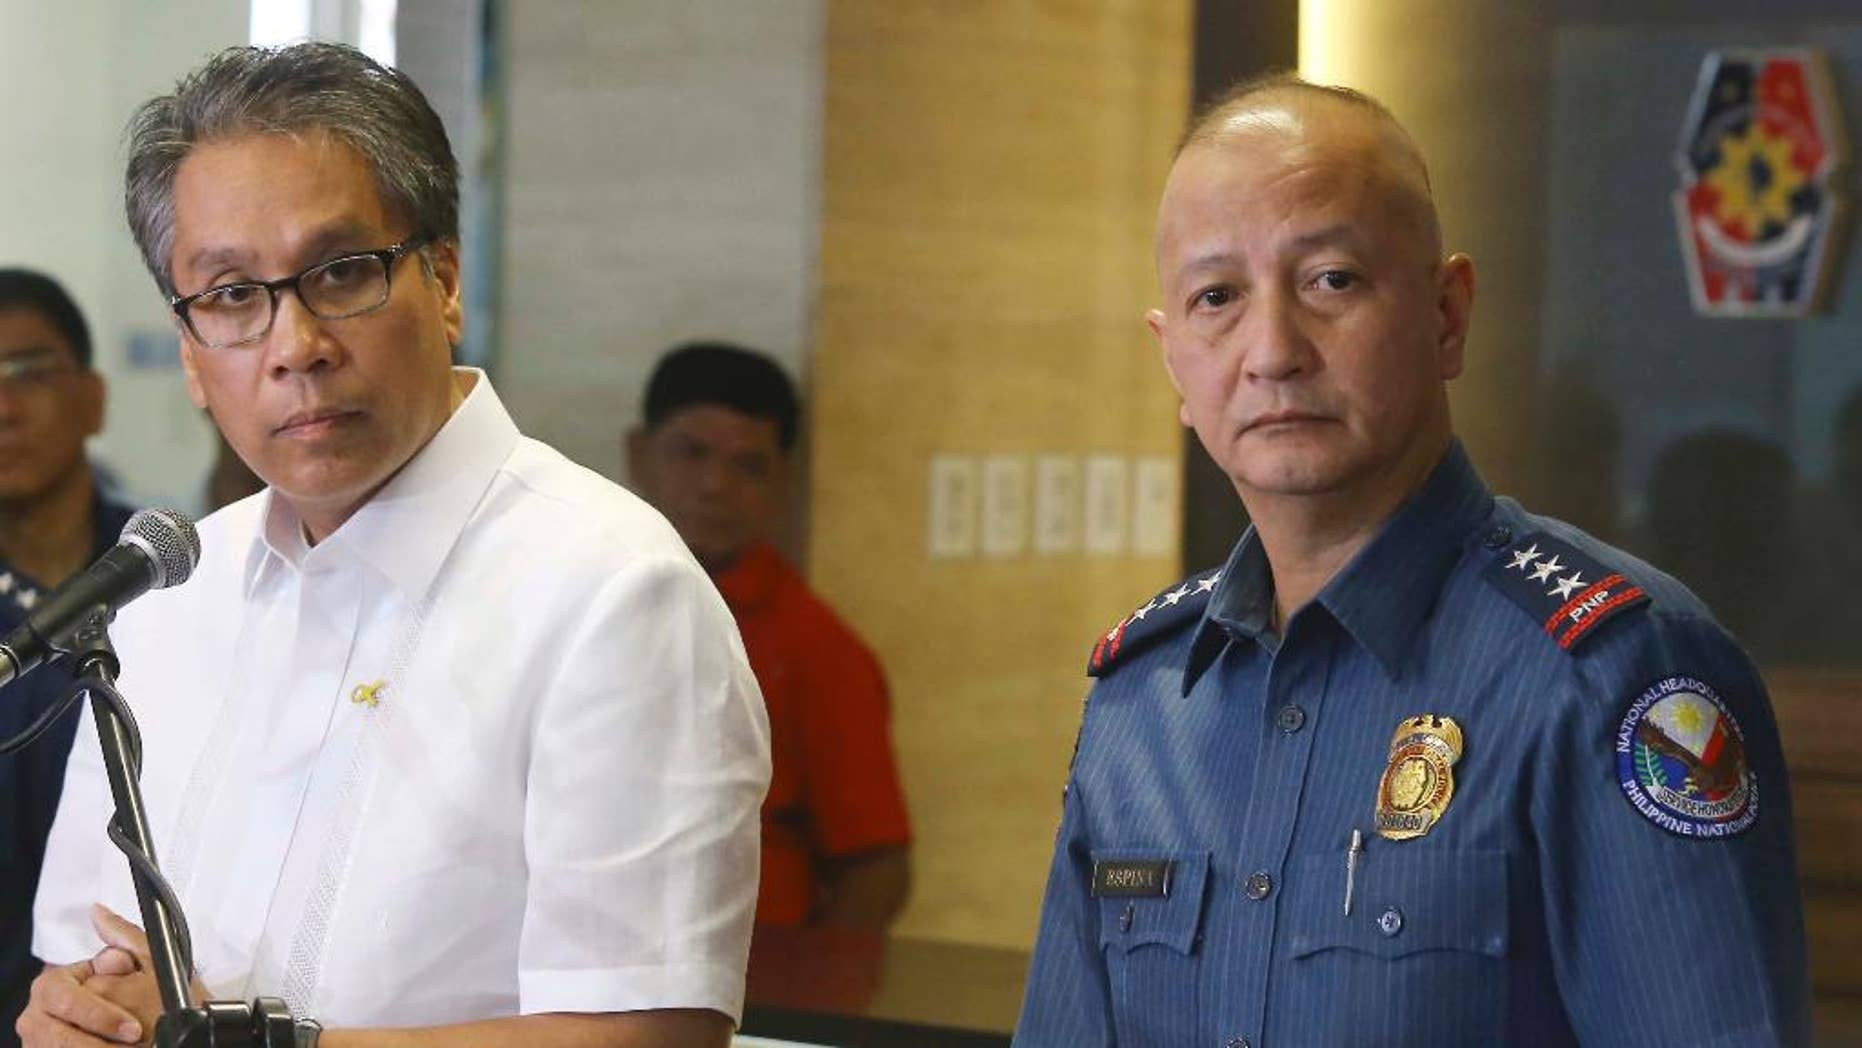 Philippine Interior and Local Government Secretary Mar Roxas, left, and Philippine National Police Deputy Director General Leonardo Espinal, right, listen to a reporter's questions during a news conference on Sunday's killing of at least 44 anti-terror commandos in the southern Philippines, Tuesday, Jan. 27, 2015 in Manila, Philippines. The government's biggest single-day combat loss in recent memory shocked many and led to fears it could endanger a recent peace deal signed with the biggest Muslim rebel group. (AP Photo)